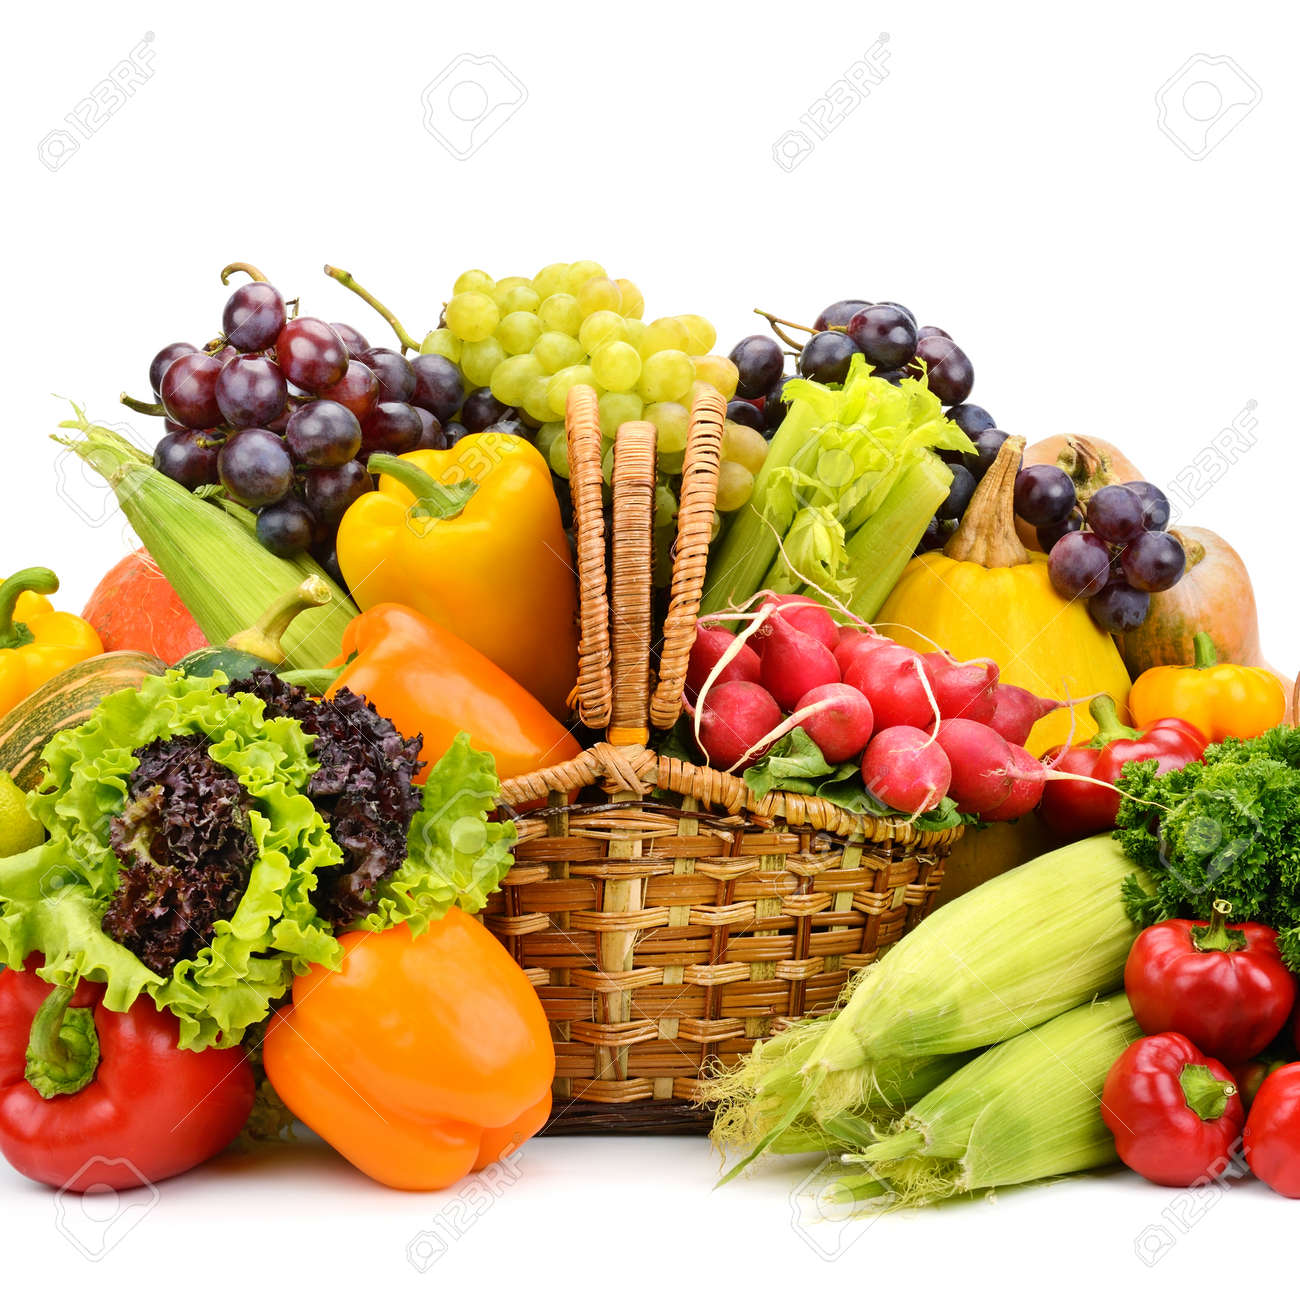 Healthy vegetables and fruits in willow basket isolated on white - 129541202